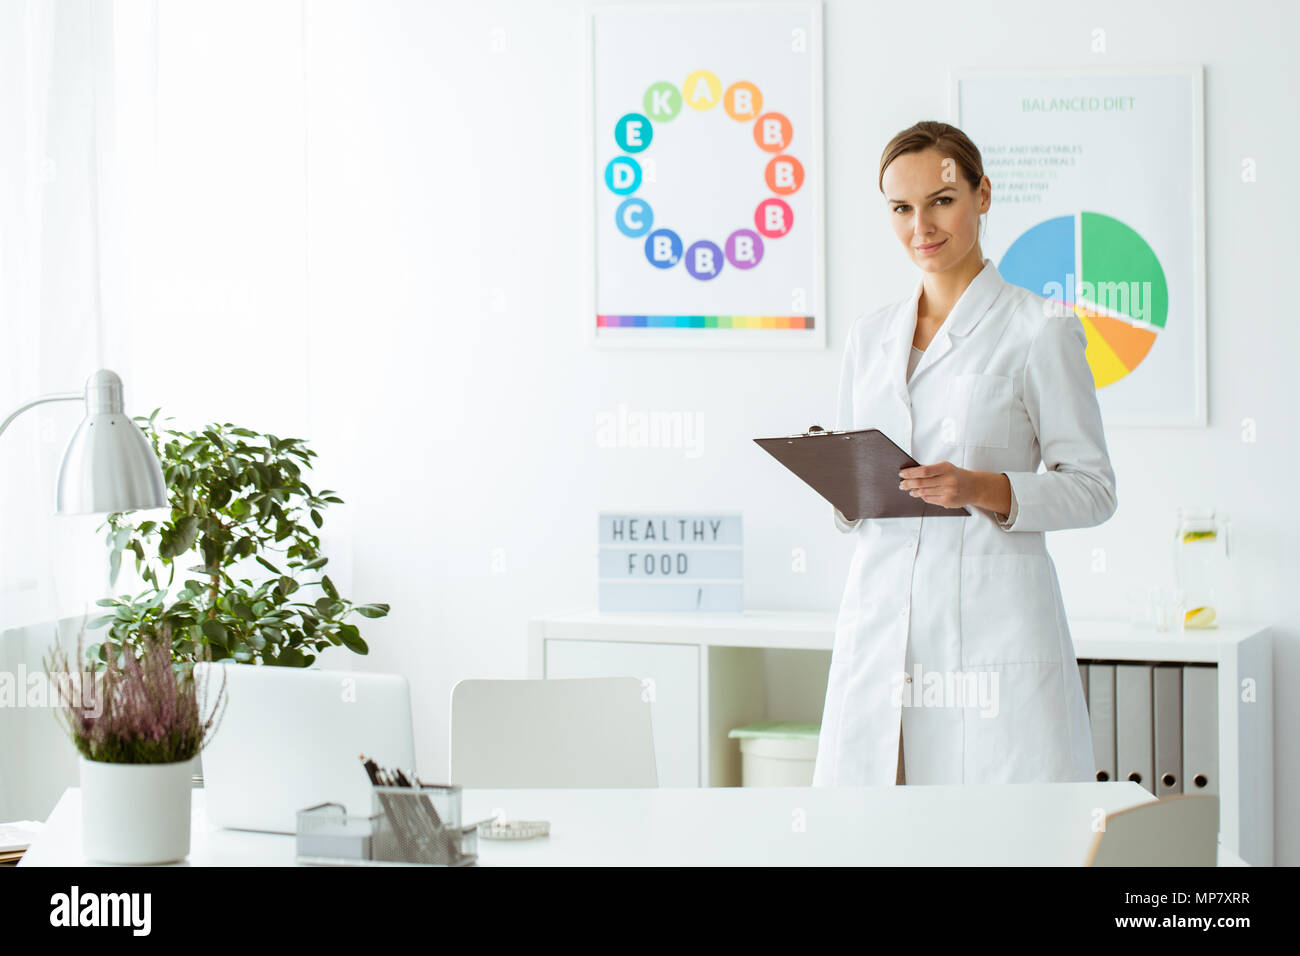 Professional nutritionist in white uniform in the office with plant and colorful posters - Stock Image